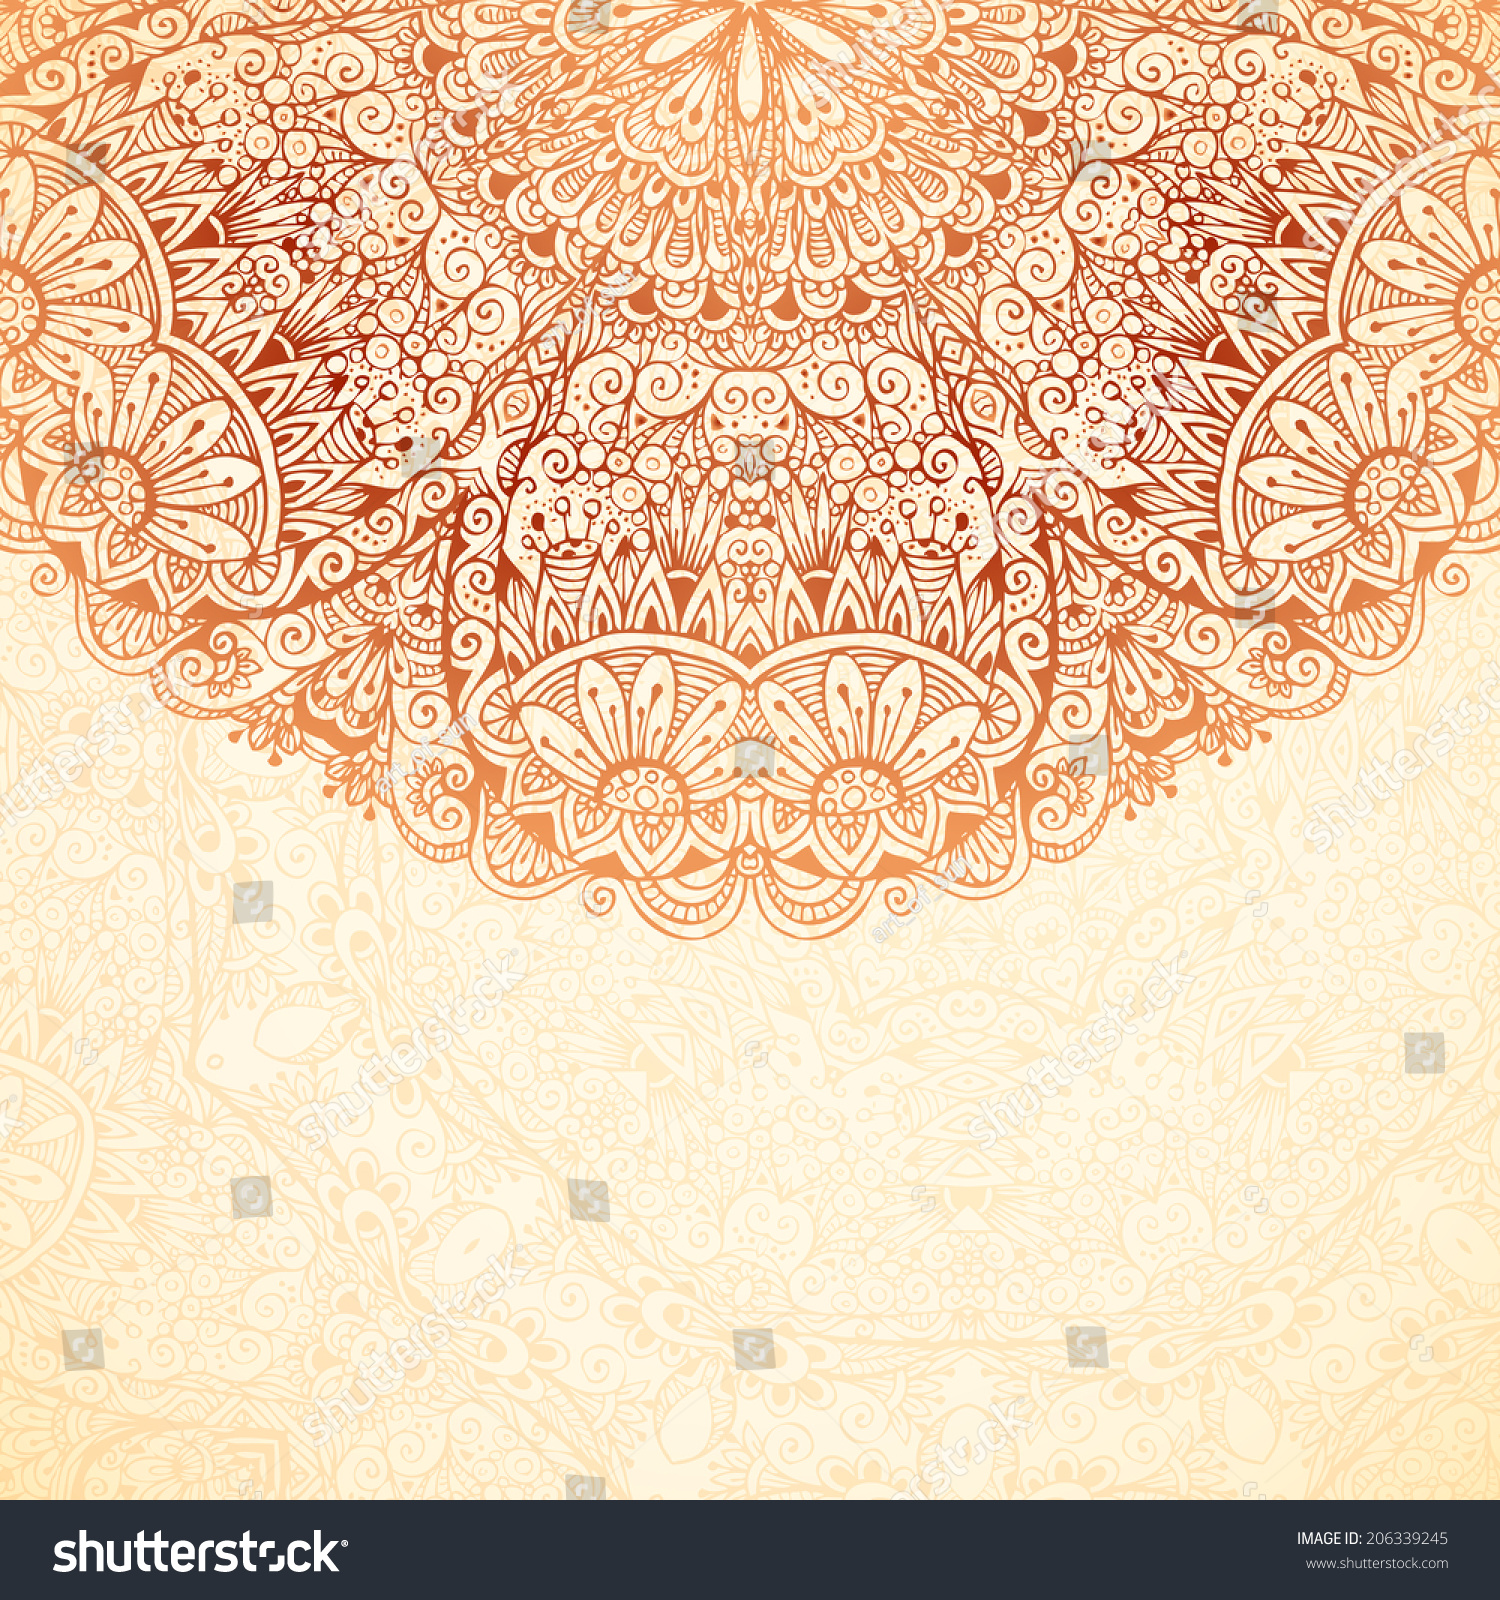 Ornate vintage vector background in mehndi style royalty free stock - Ornate Vintage Background In Mehndi Style With Place For Your Text